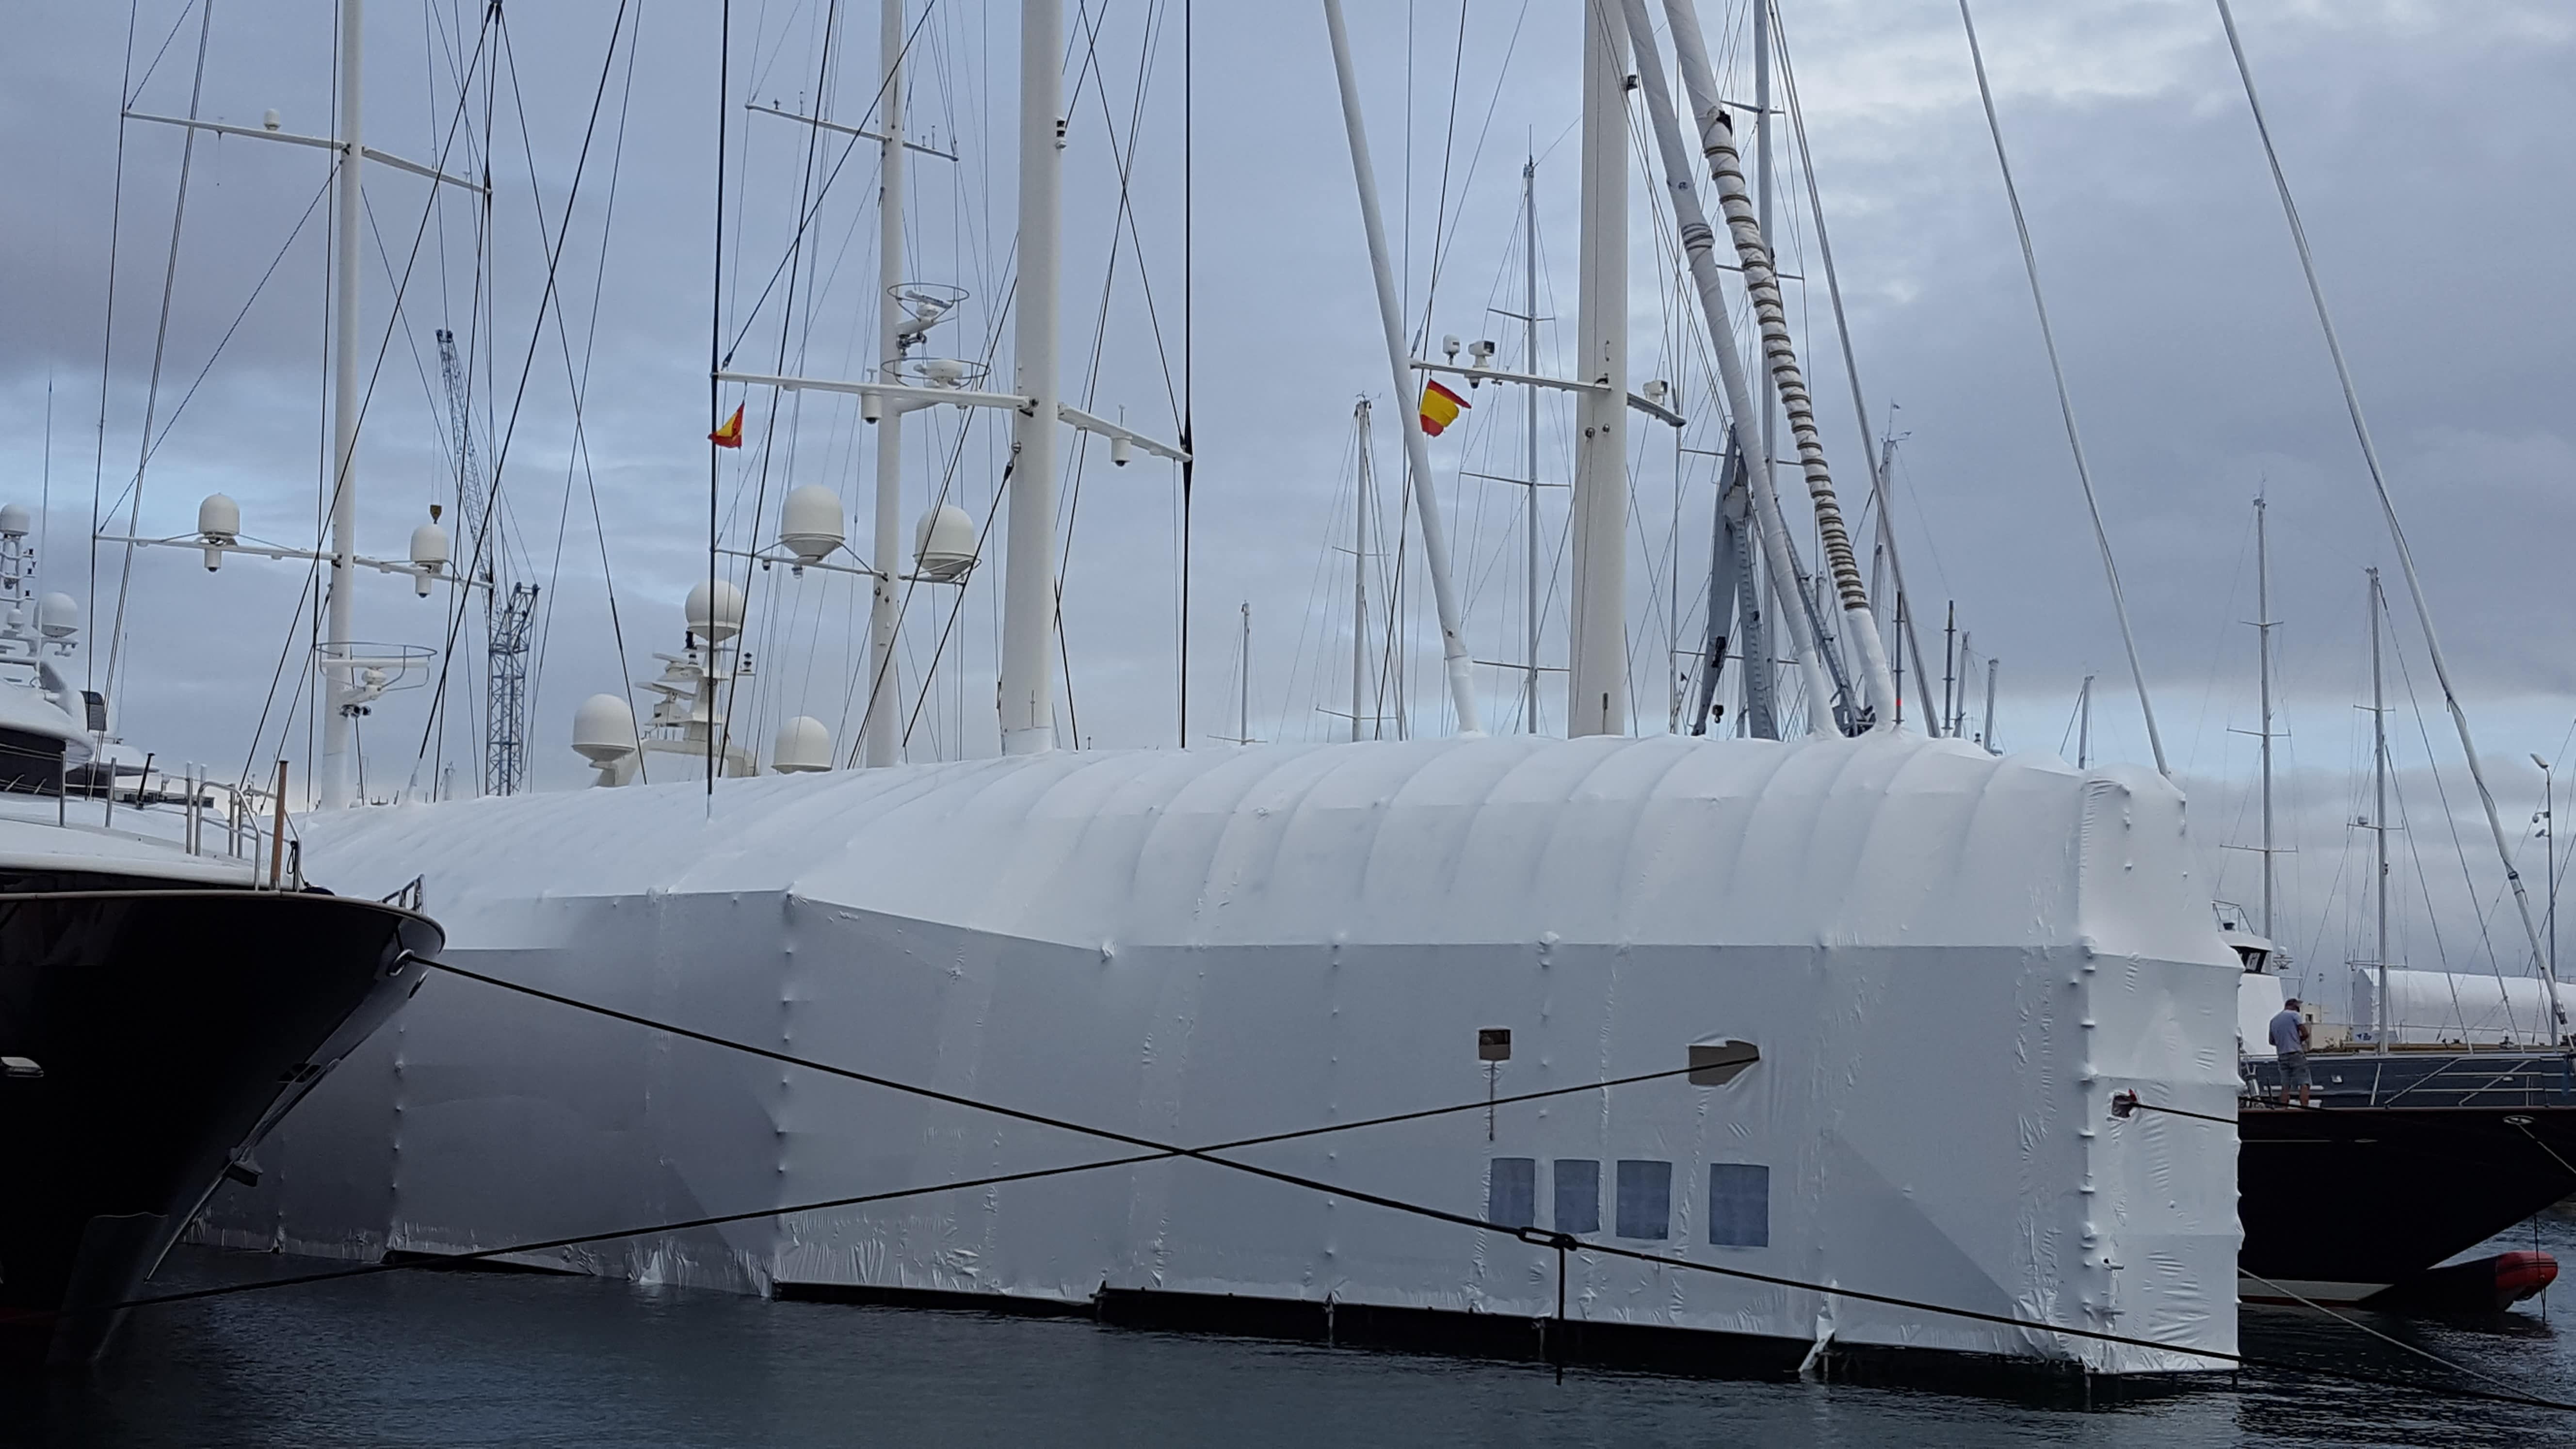 Yacht during refit